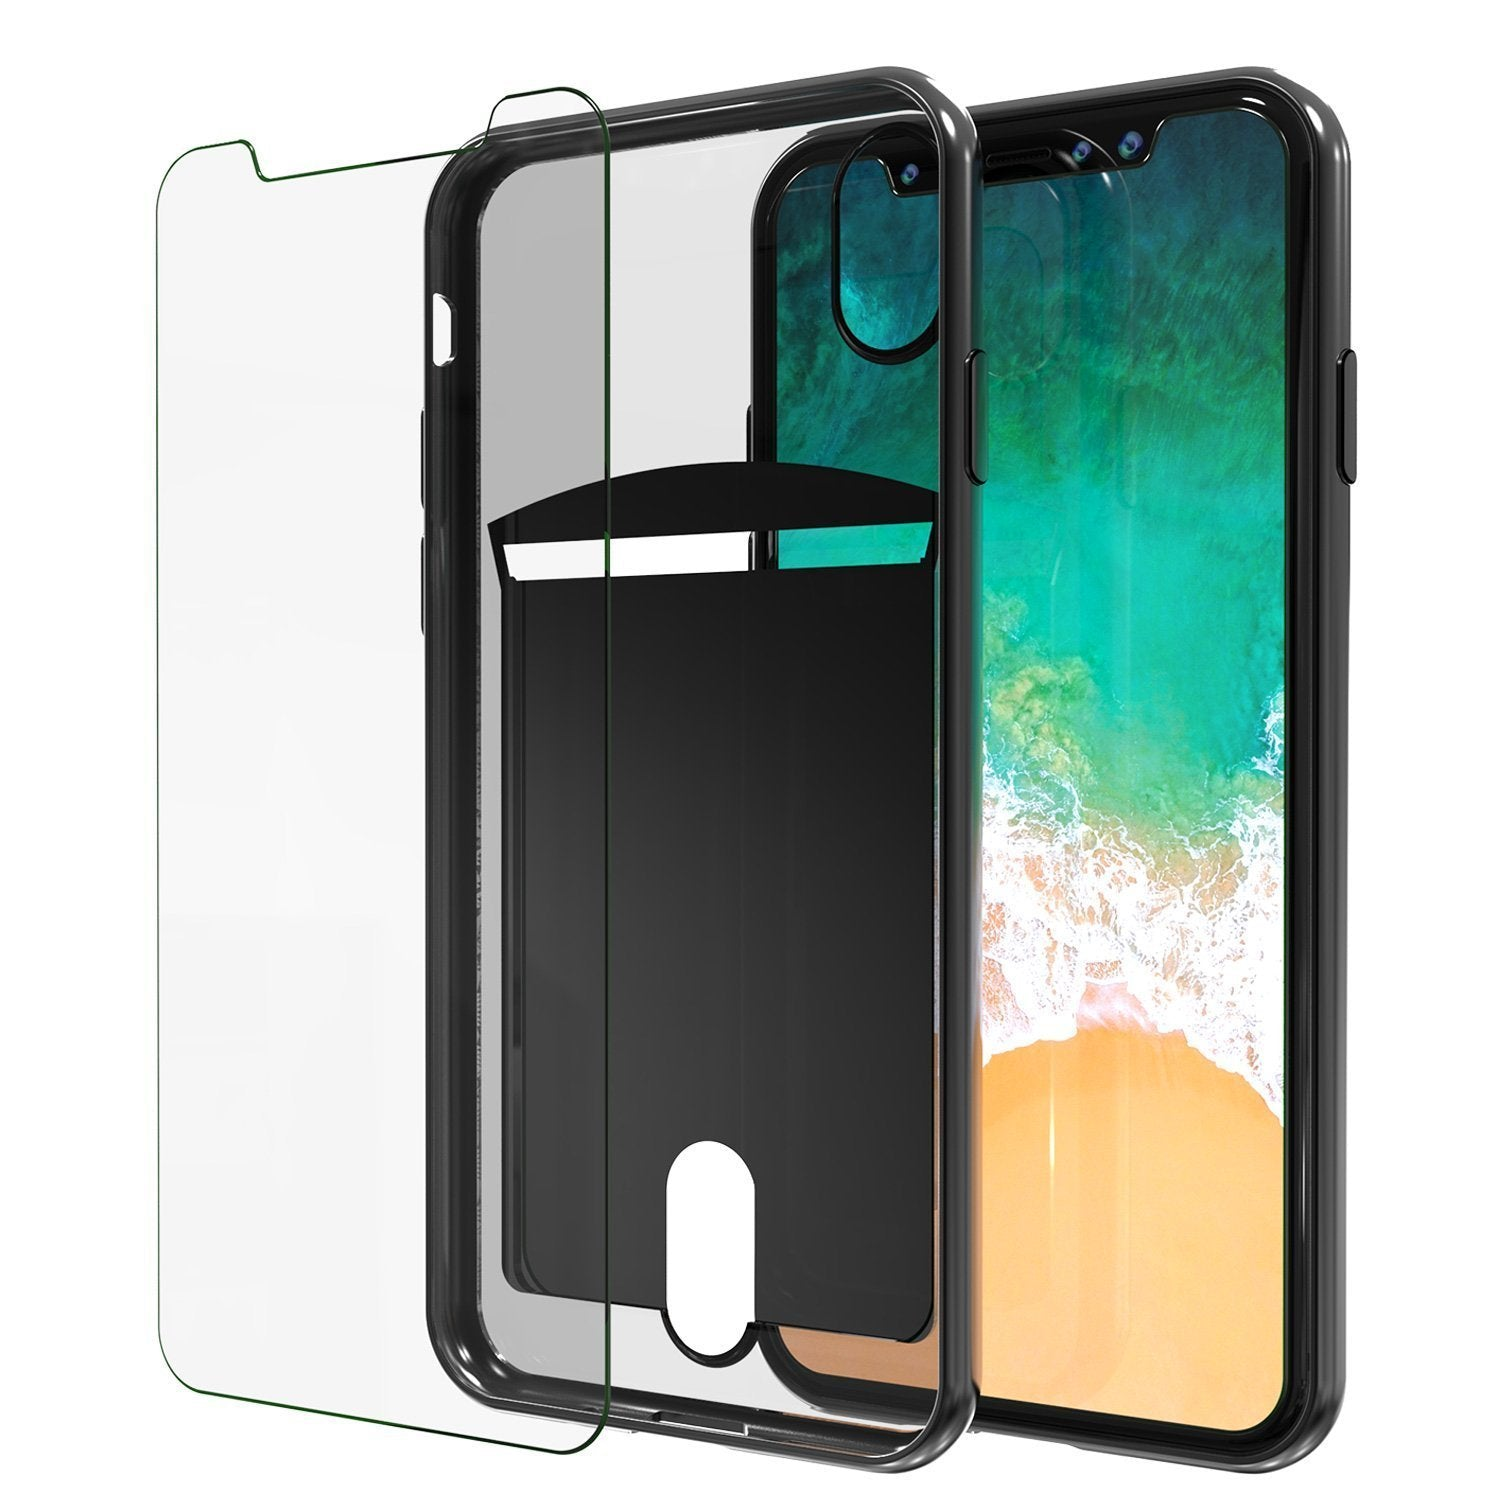 iPhone X Case, PUNKcase [LUCID Series] Slim Fit Protective Dual Layer Armor Cover W/ Scratch Resistant PUNKSHIELD Screen Protector [Black]